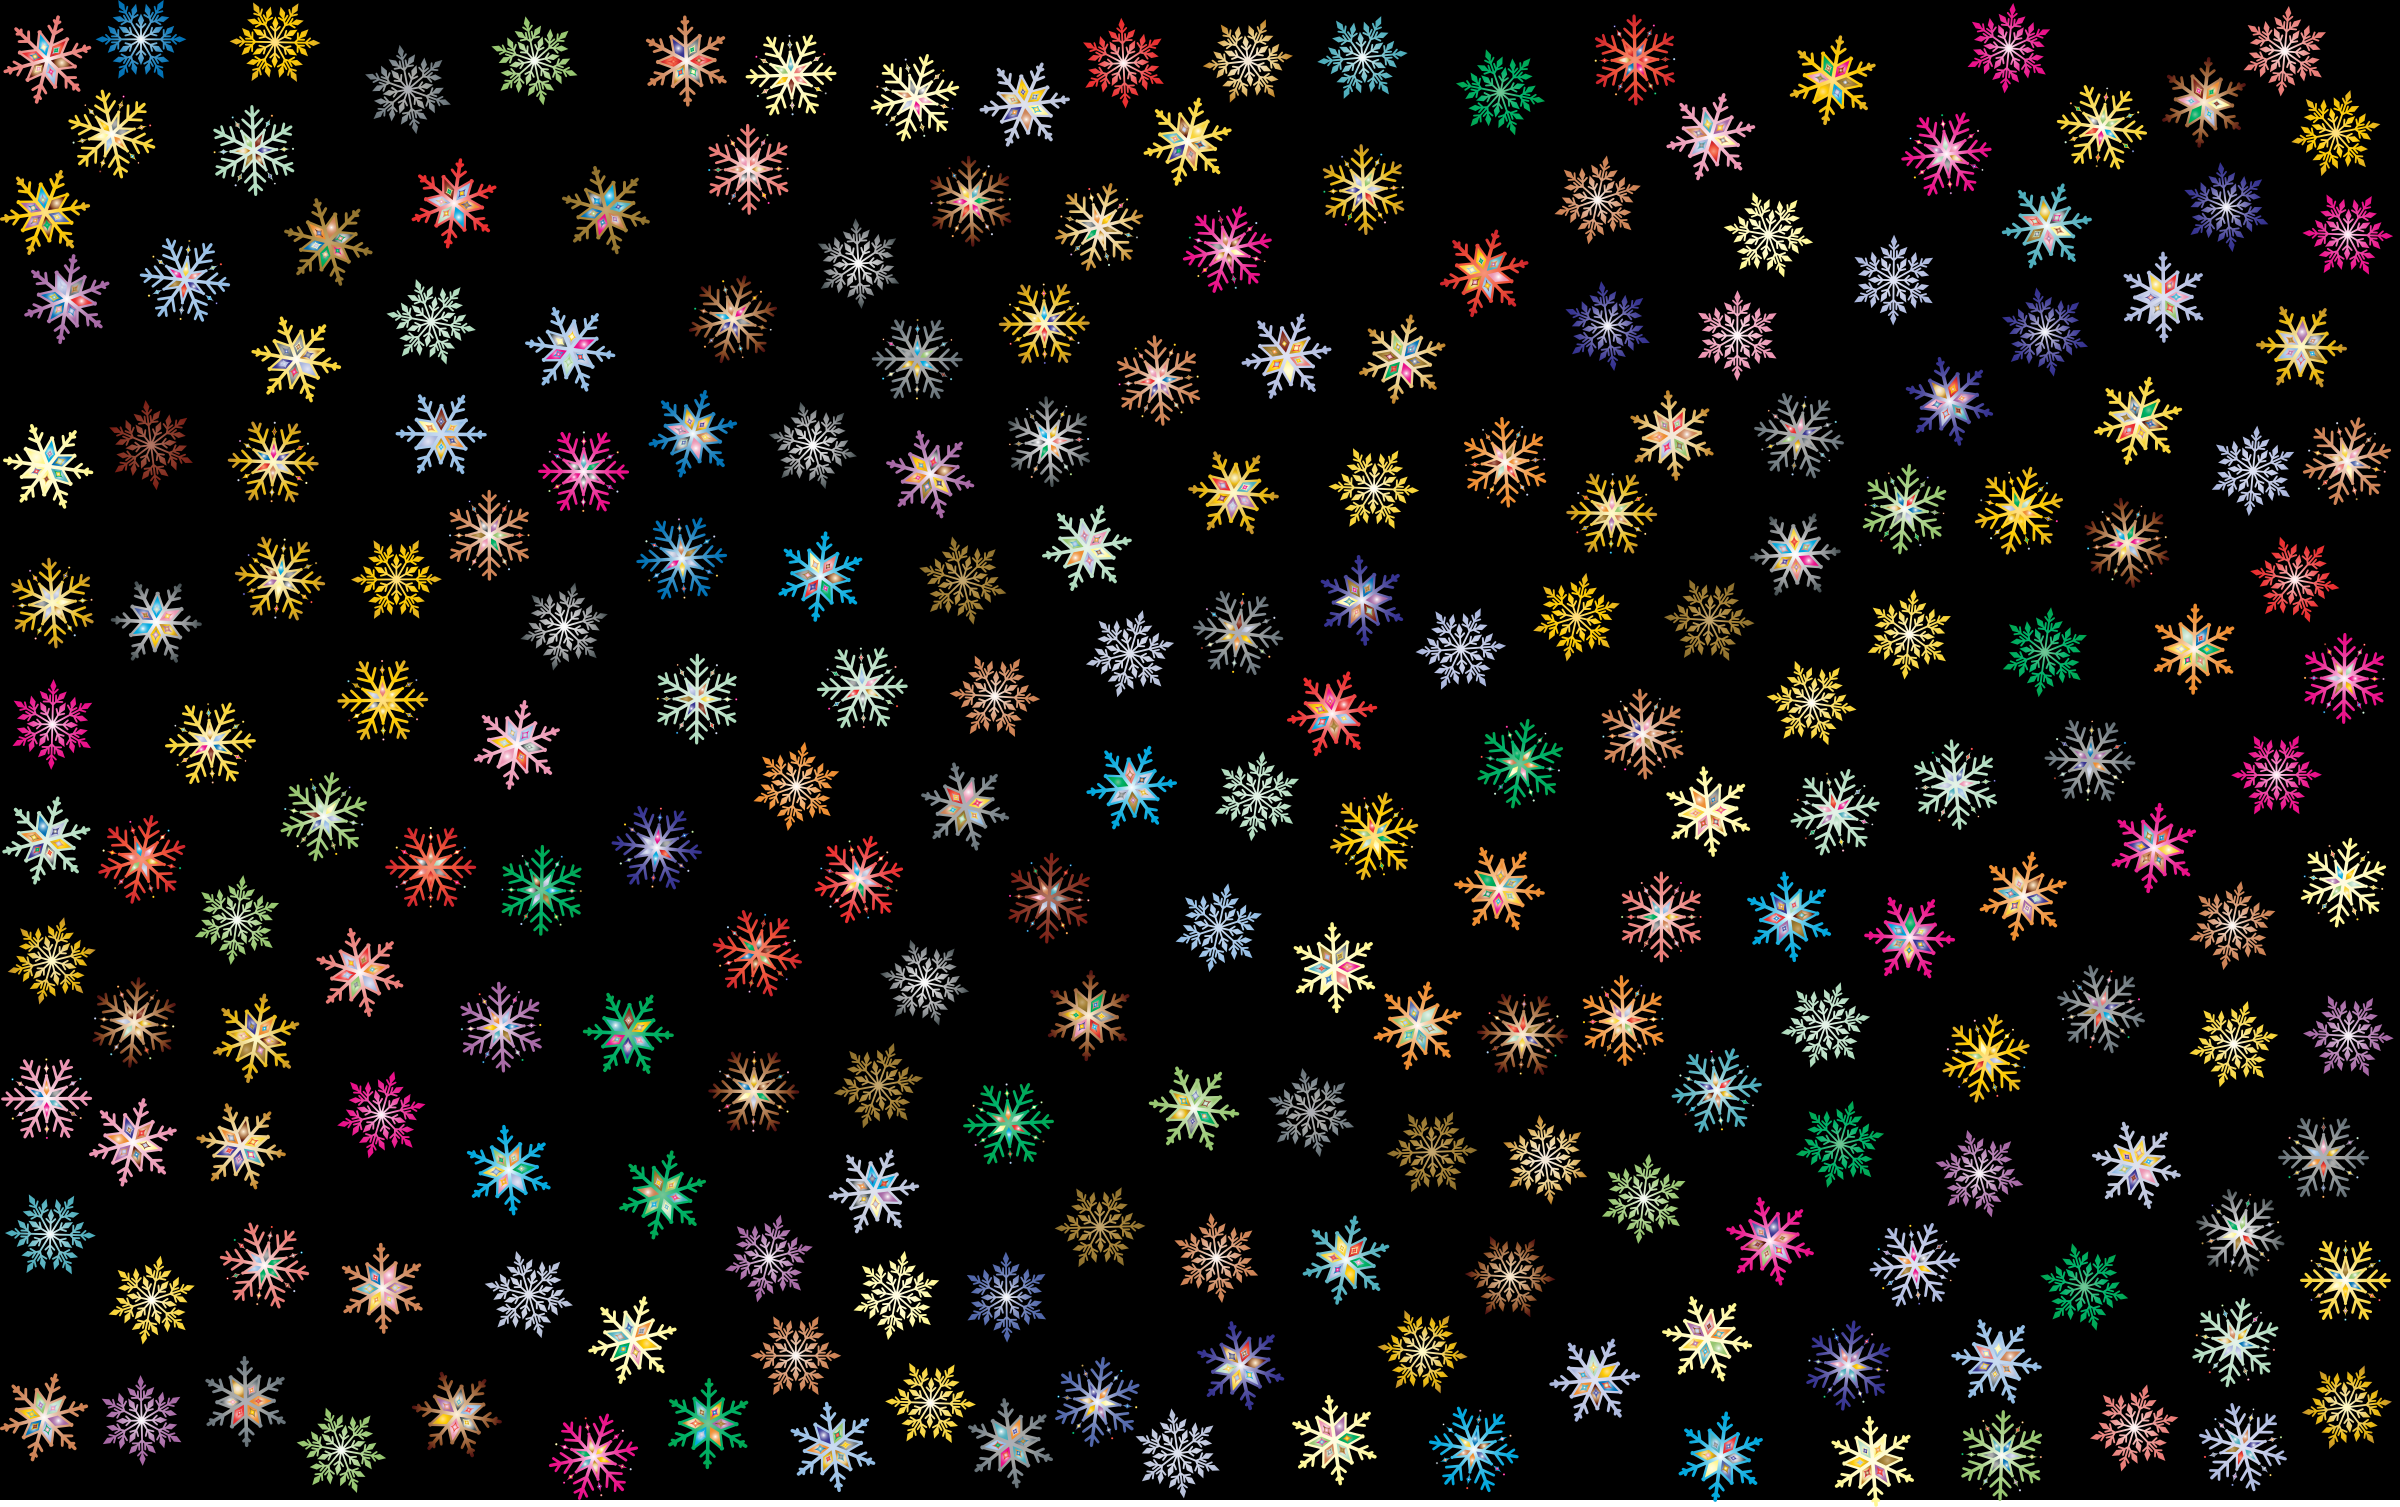 Prismatic Snowflakes Pattern 2 by GDJ